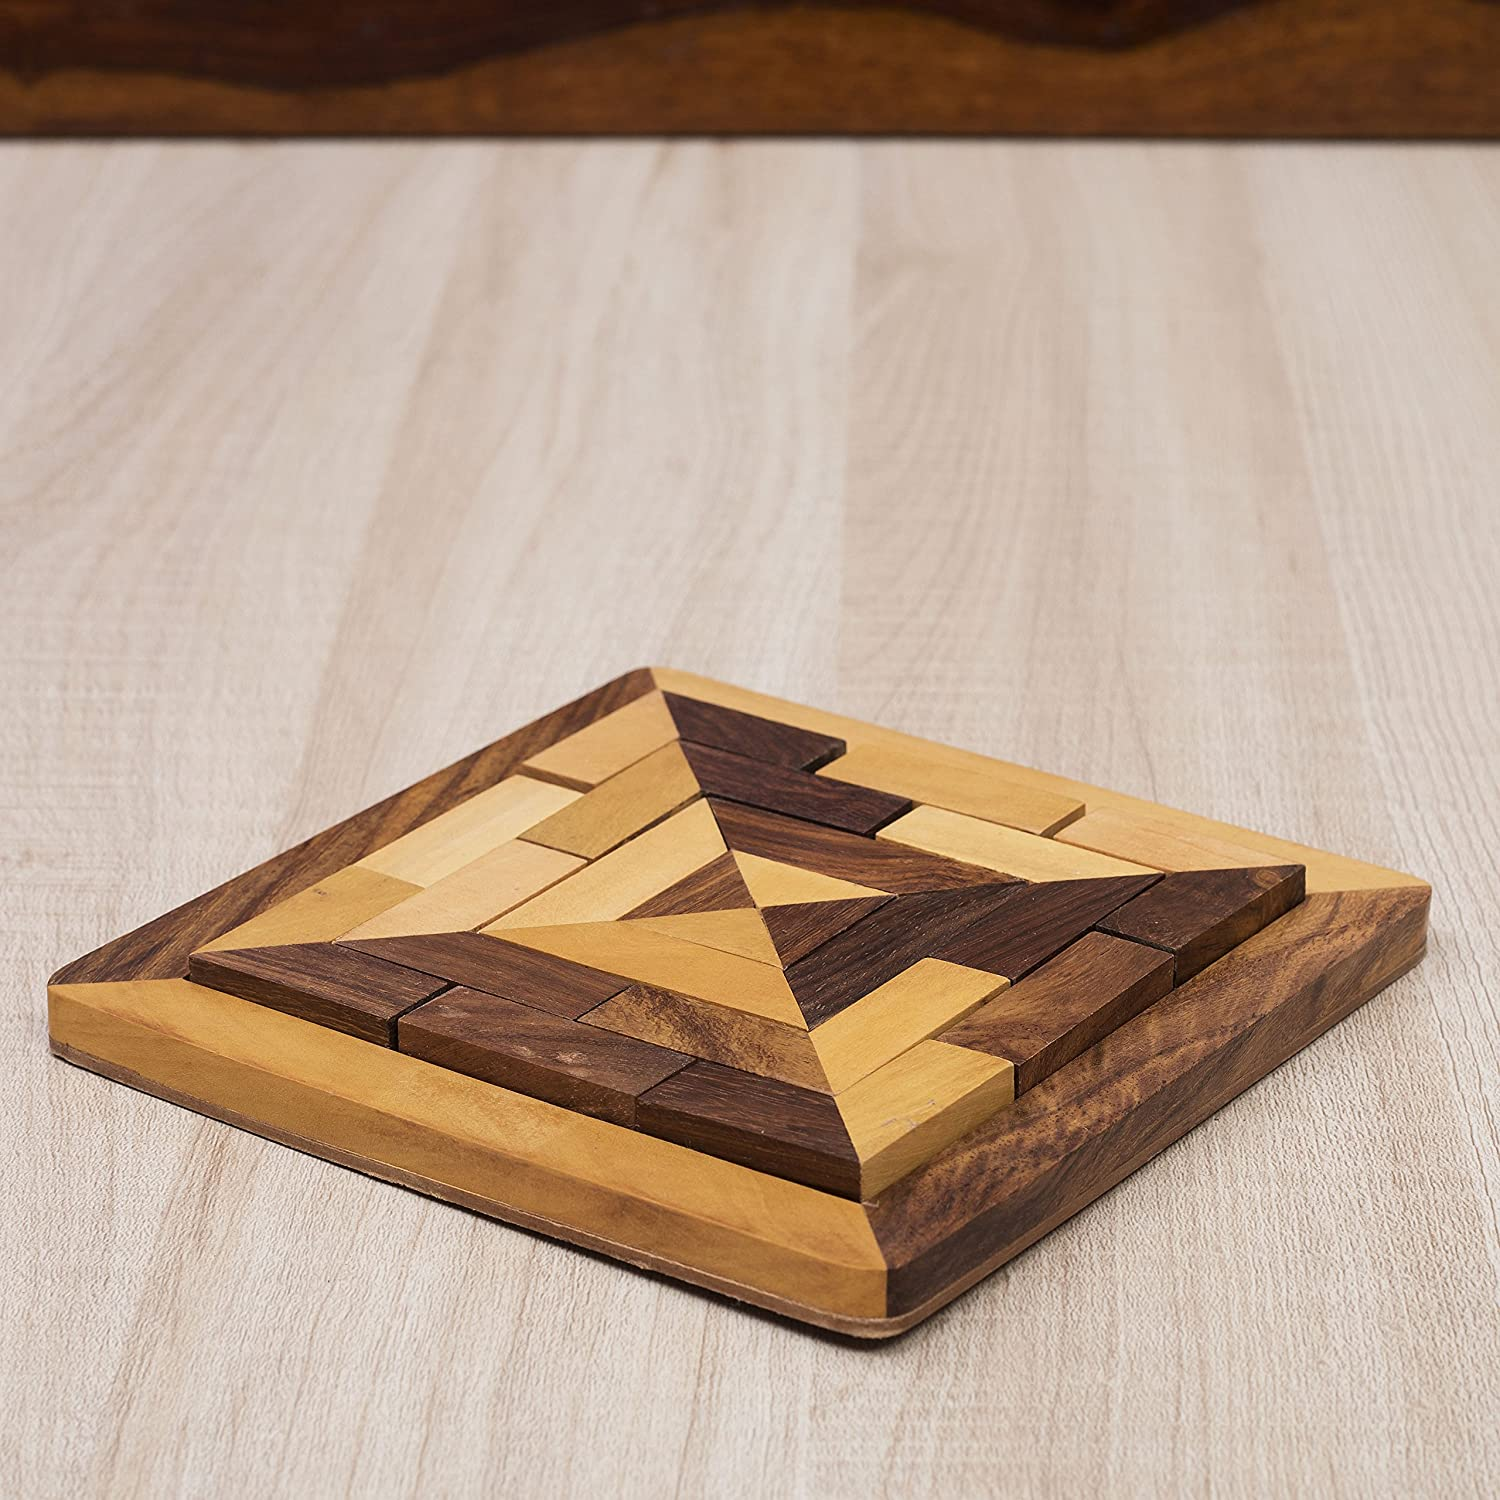 Wooden Tangram Puzzle for Kids /& Adults Brain Teaser 5.1 by 5.1 inches